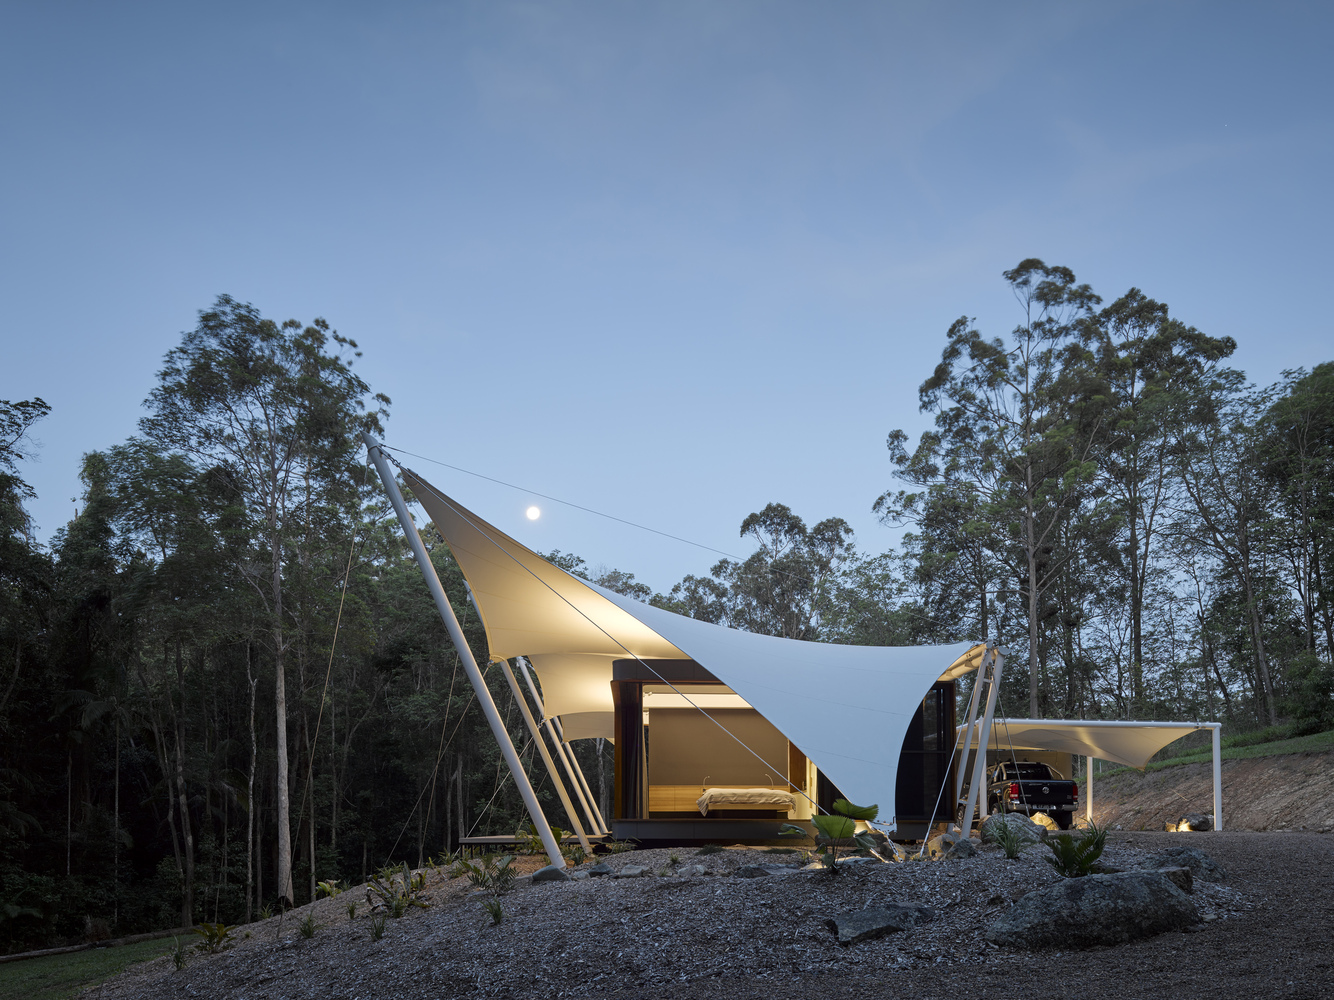 A Unique Family Home Covered Entirely By a Tent Structure